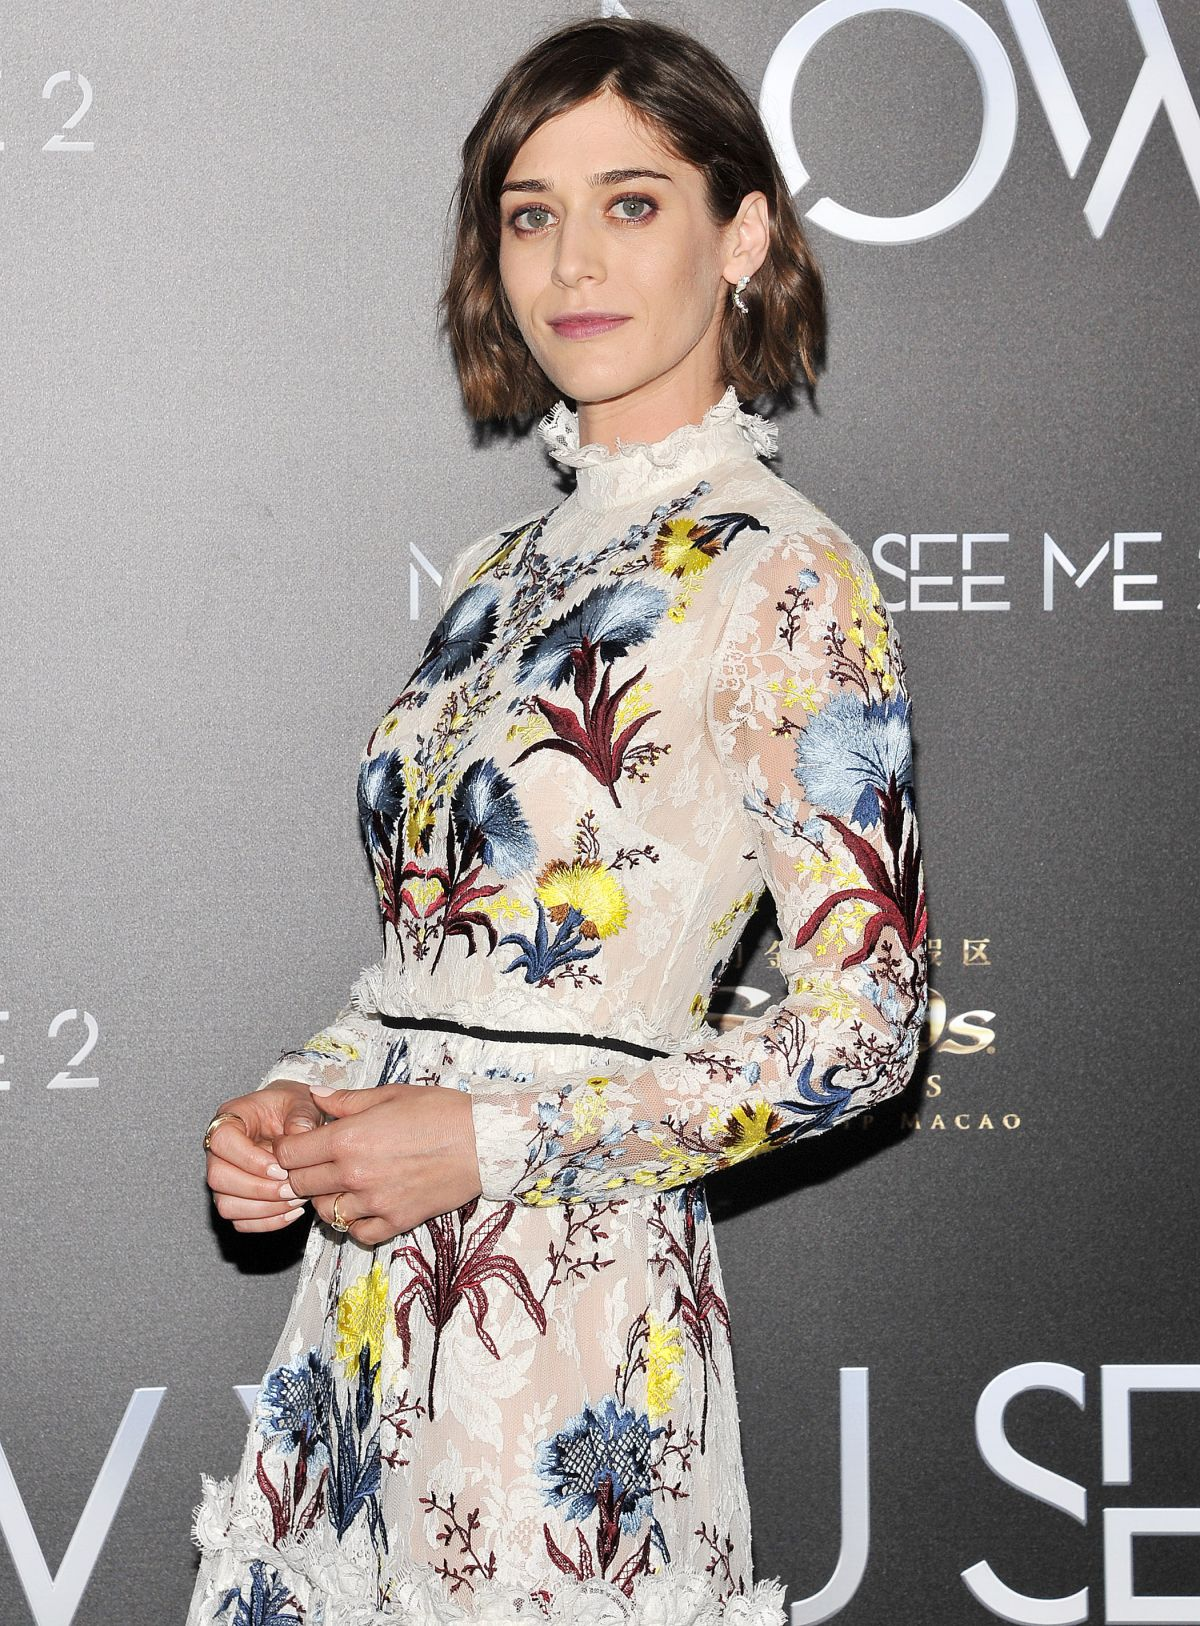 LIZZY CAPLAN at Now You See Me 2 Premiere in New York 06/06/2016